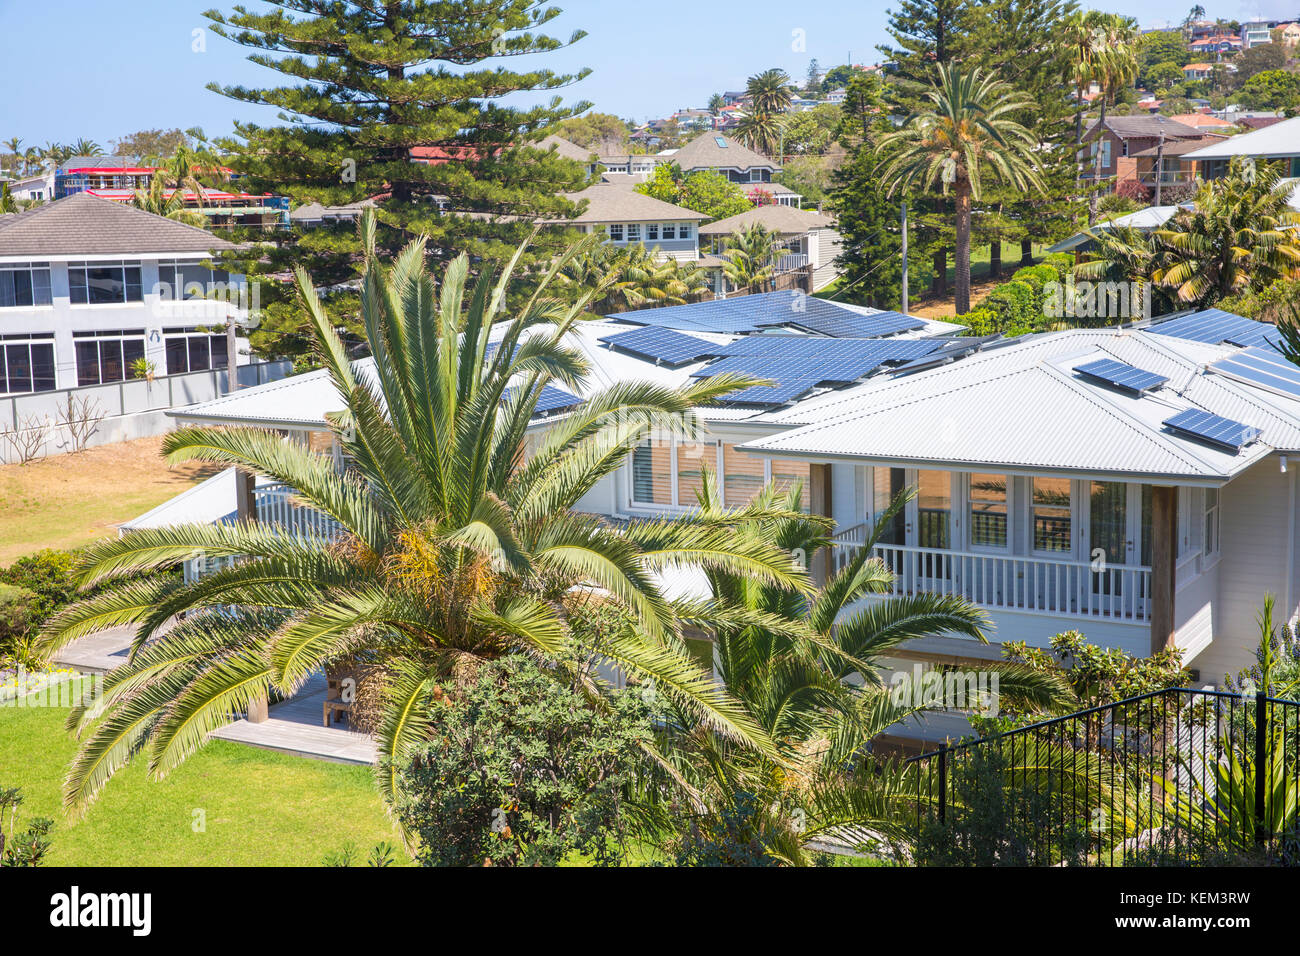 Residential beachfront home house with solar panels on roof in Collaroy,Sydney,Australia - Stock Image